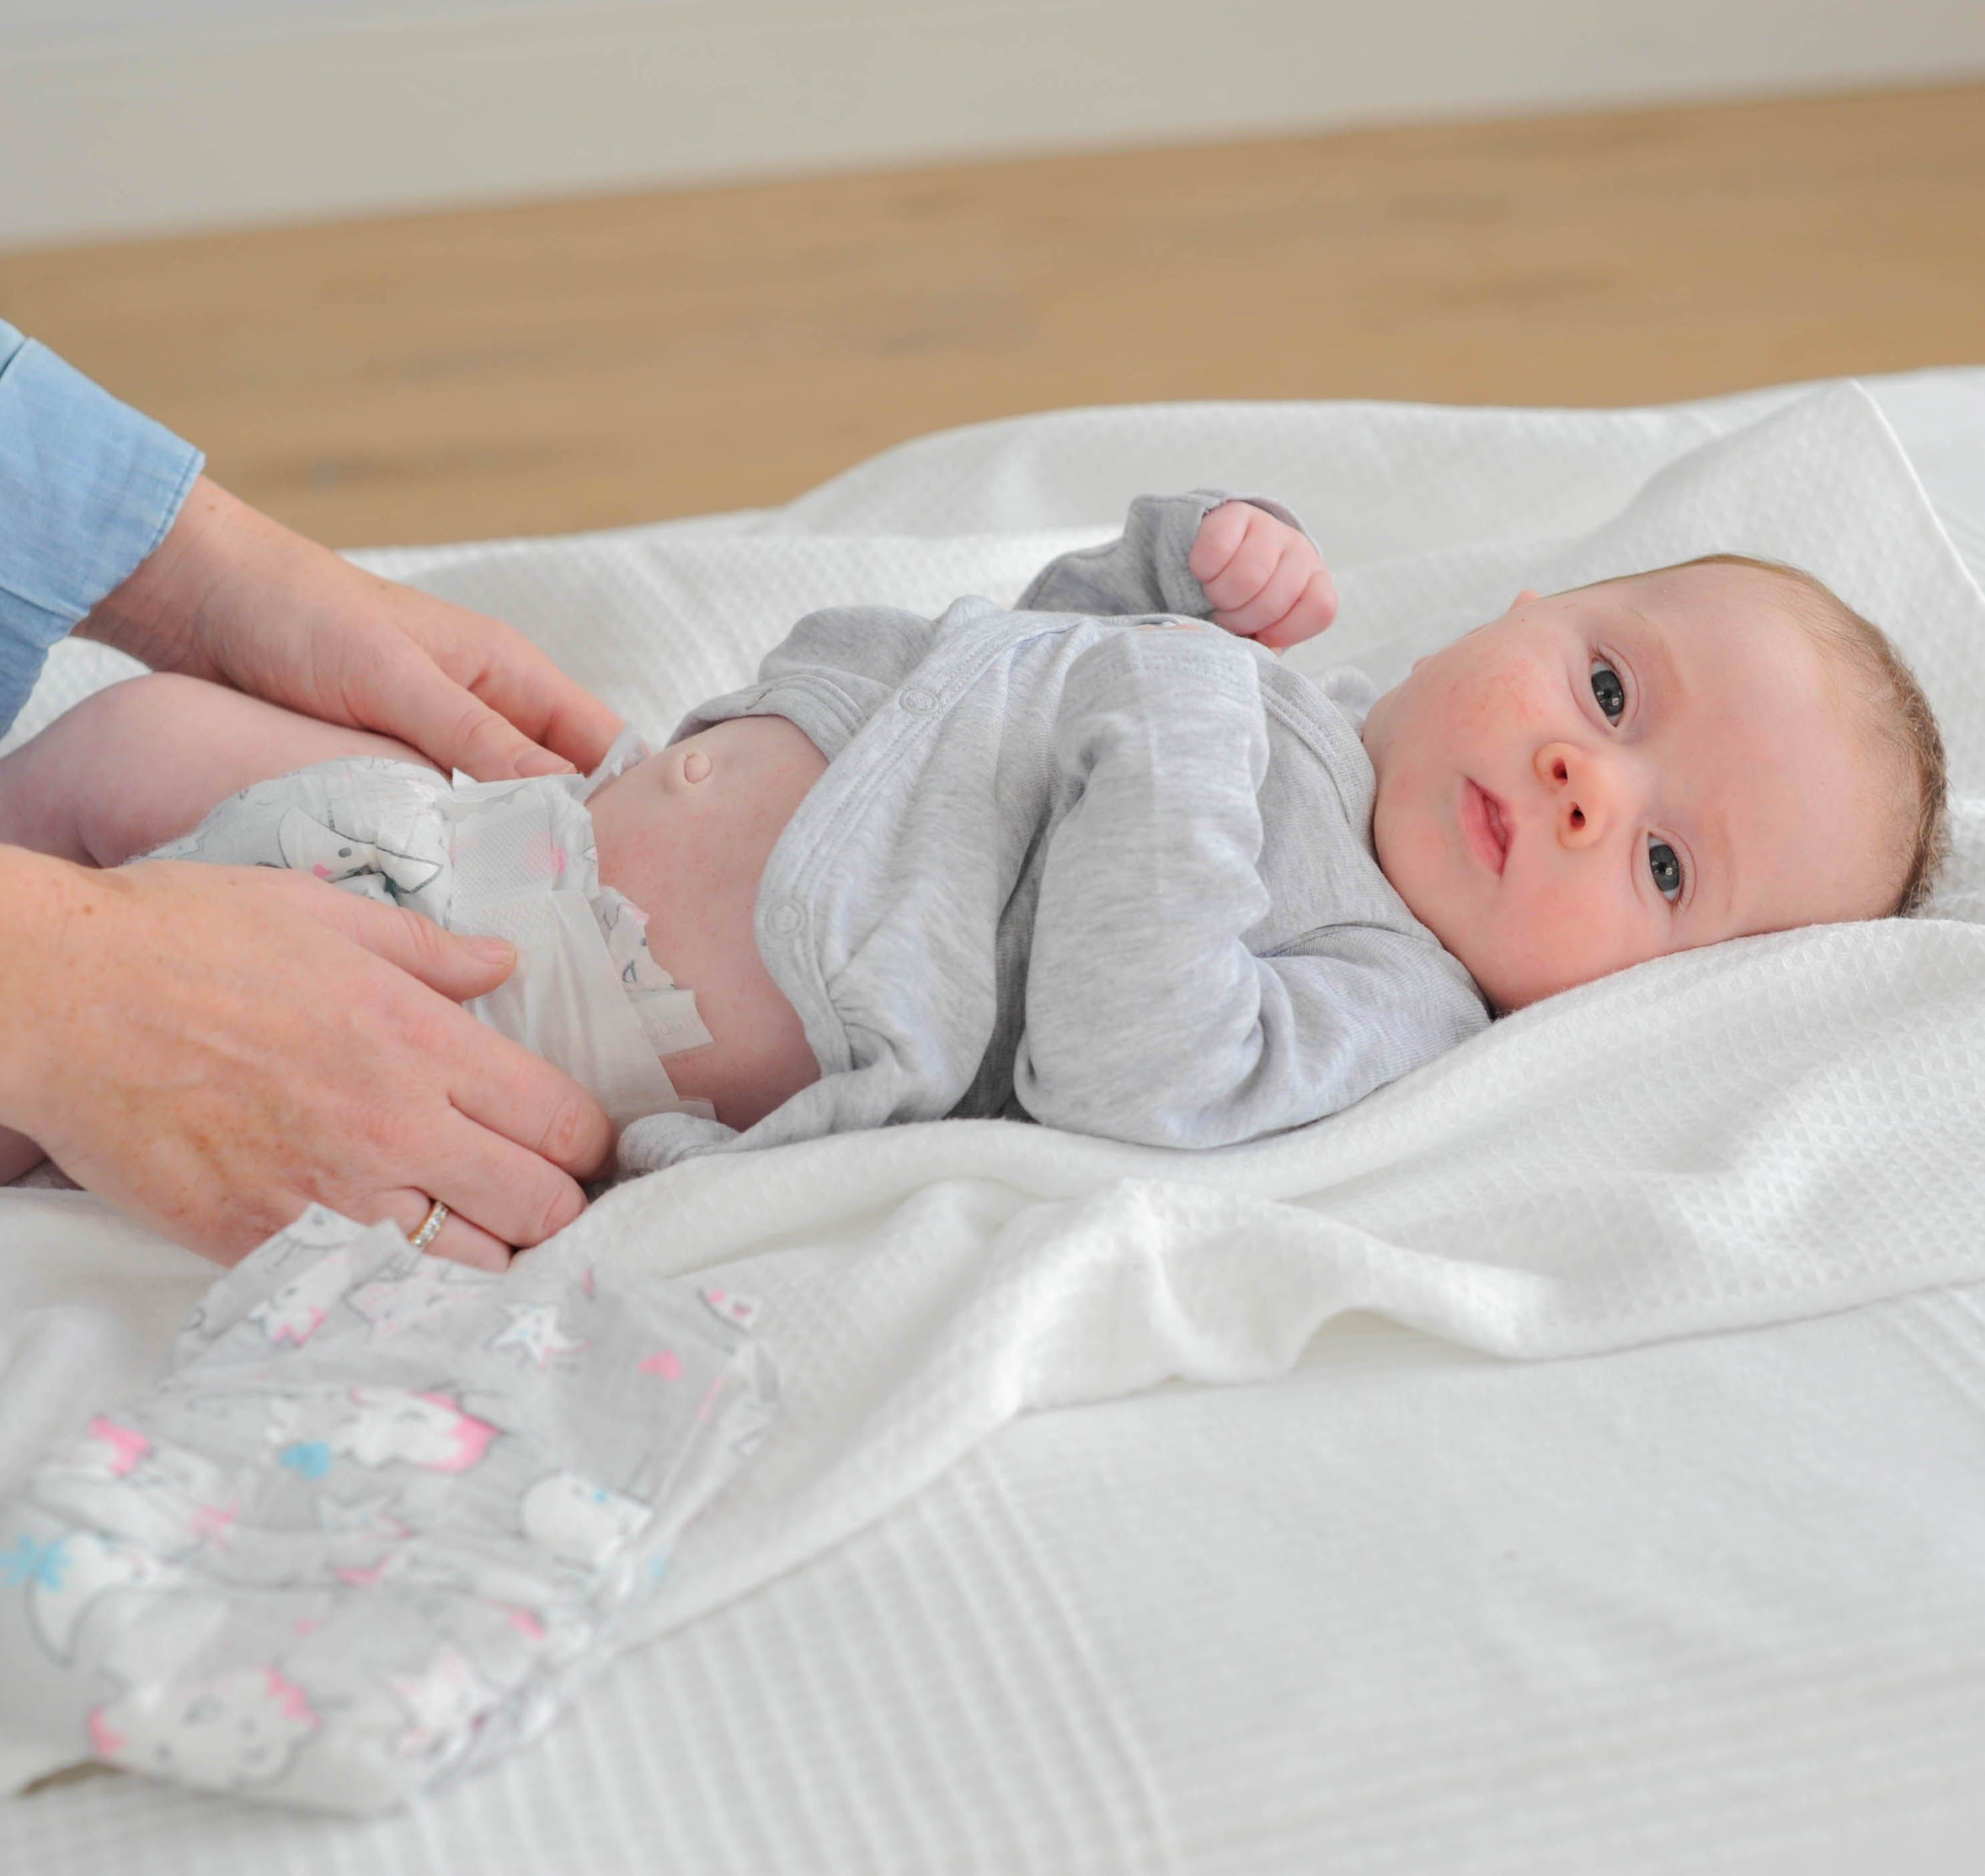 Looking For A Soft Comfy And Eco Friendly Baby Diaper Option For